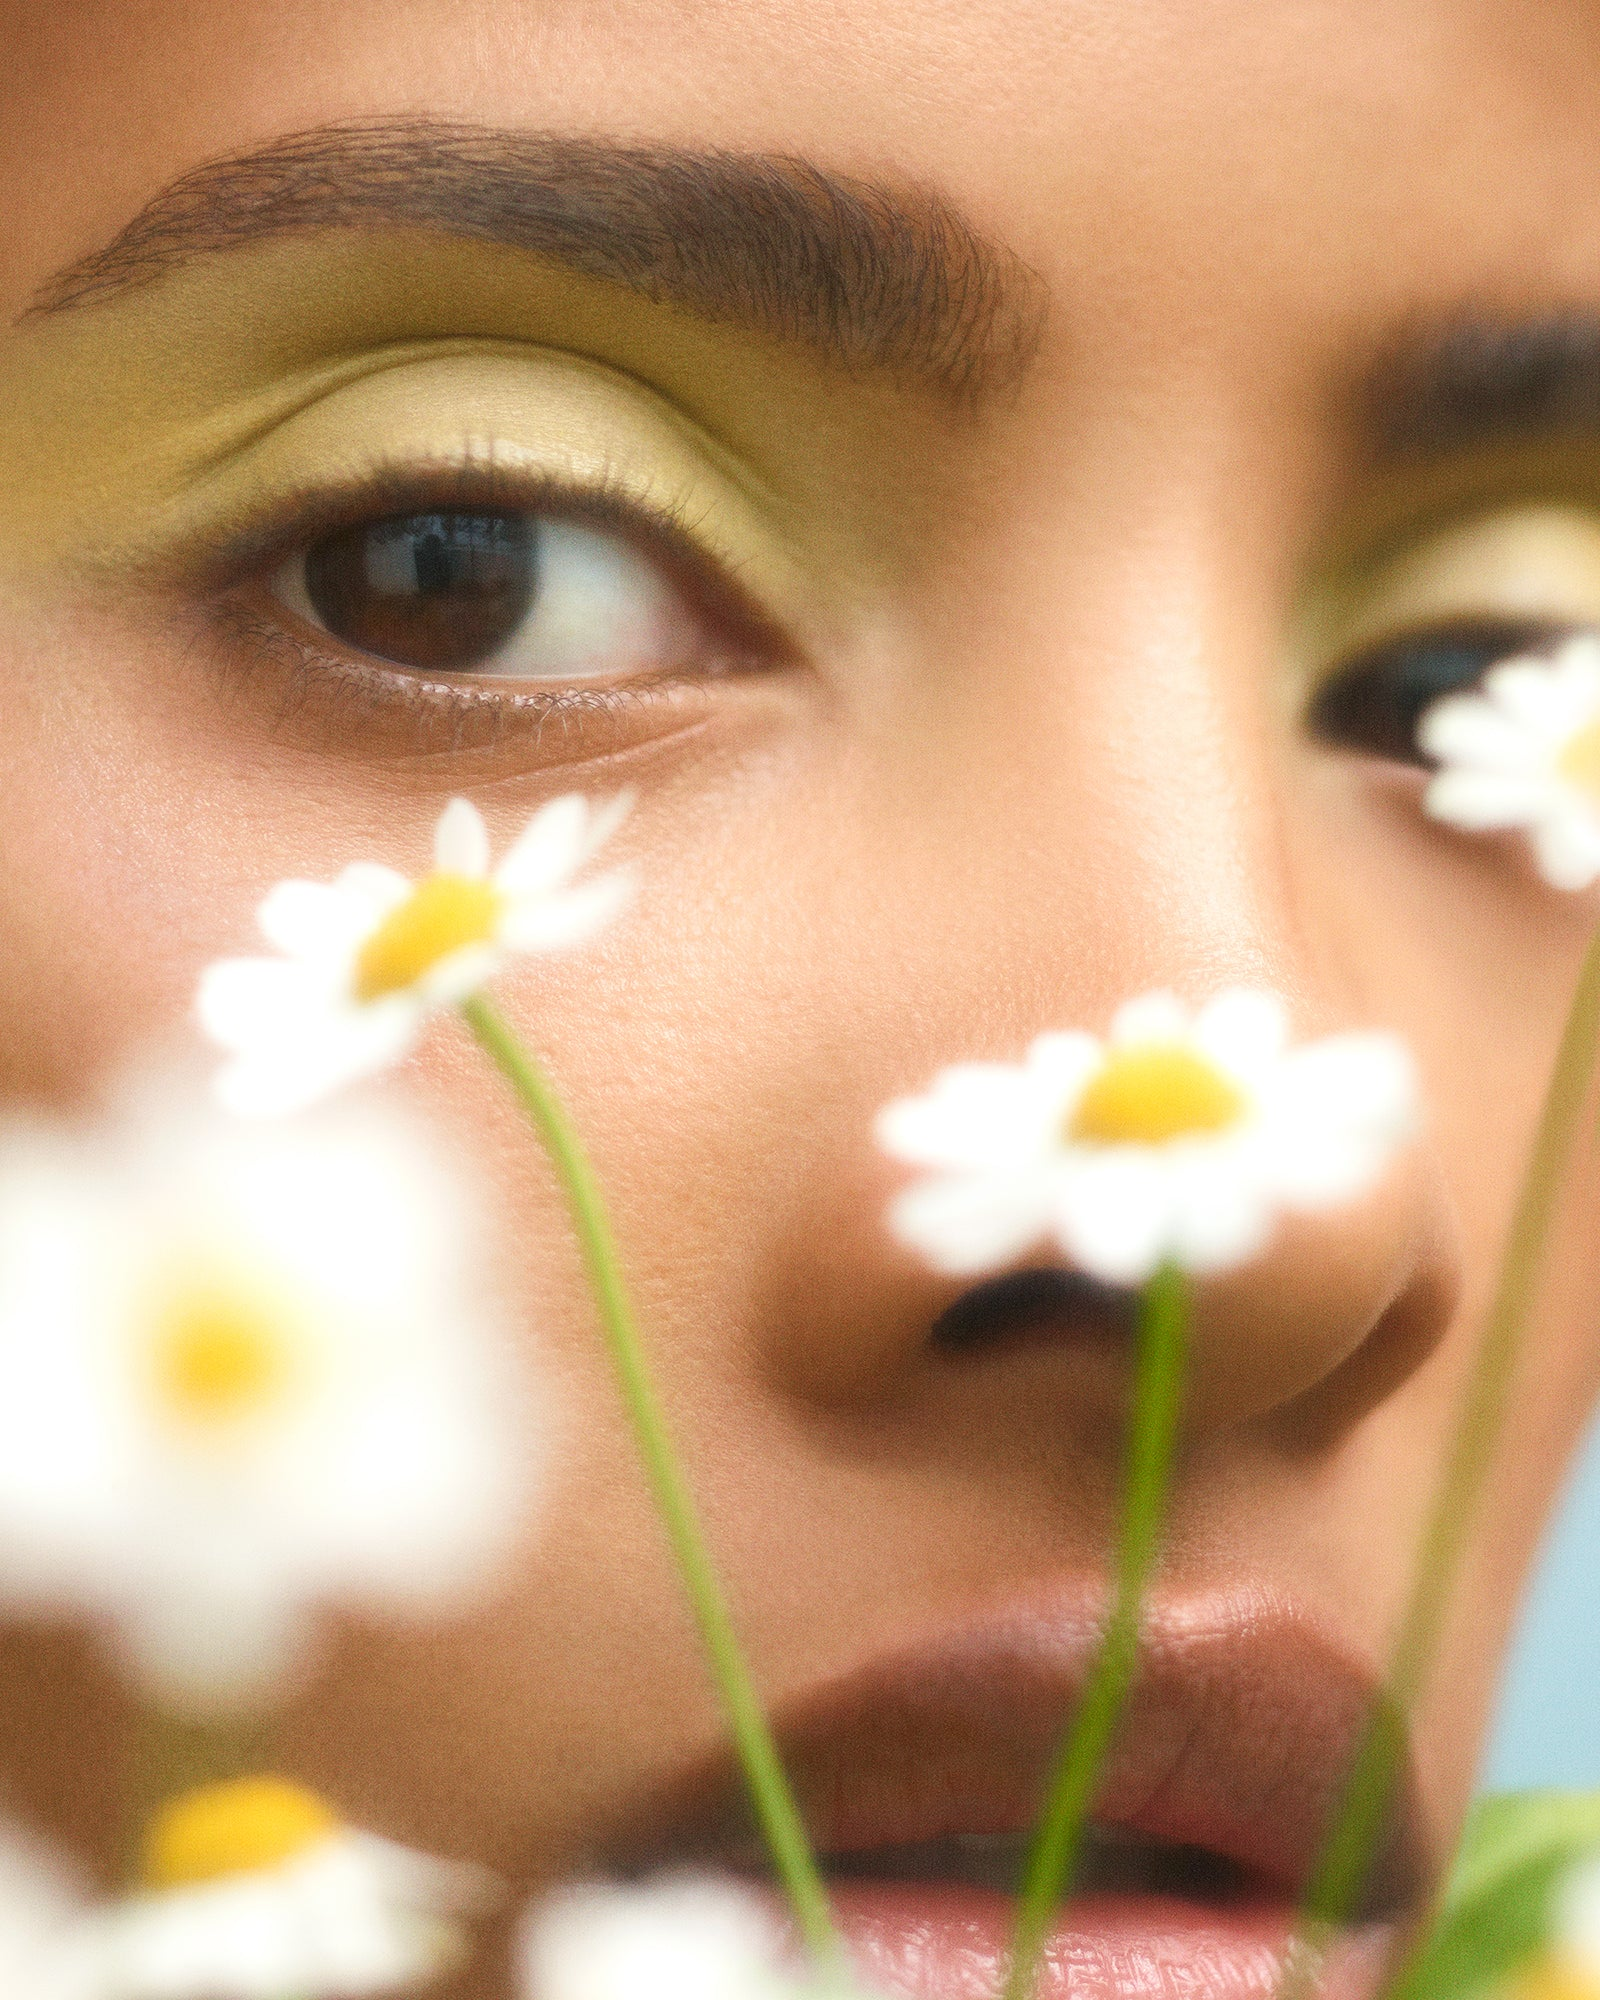 woman's face behind daisies